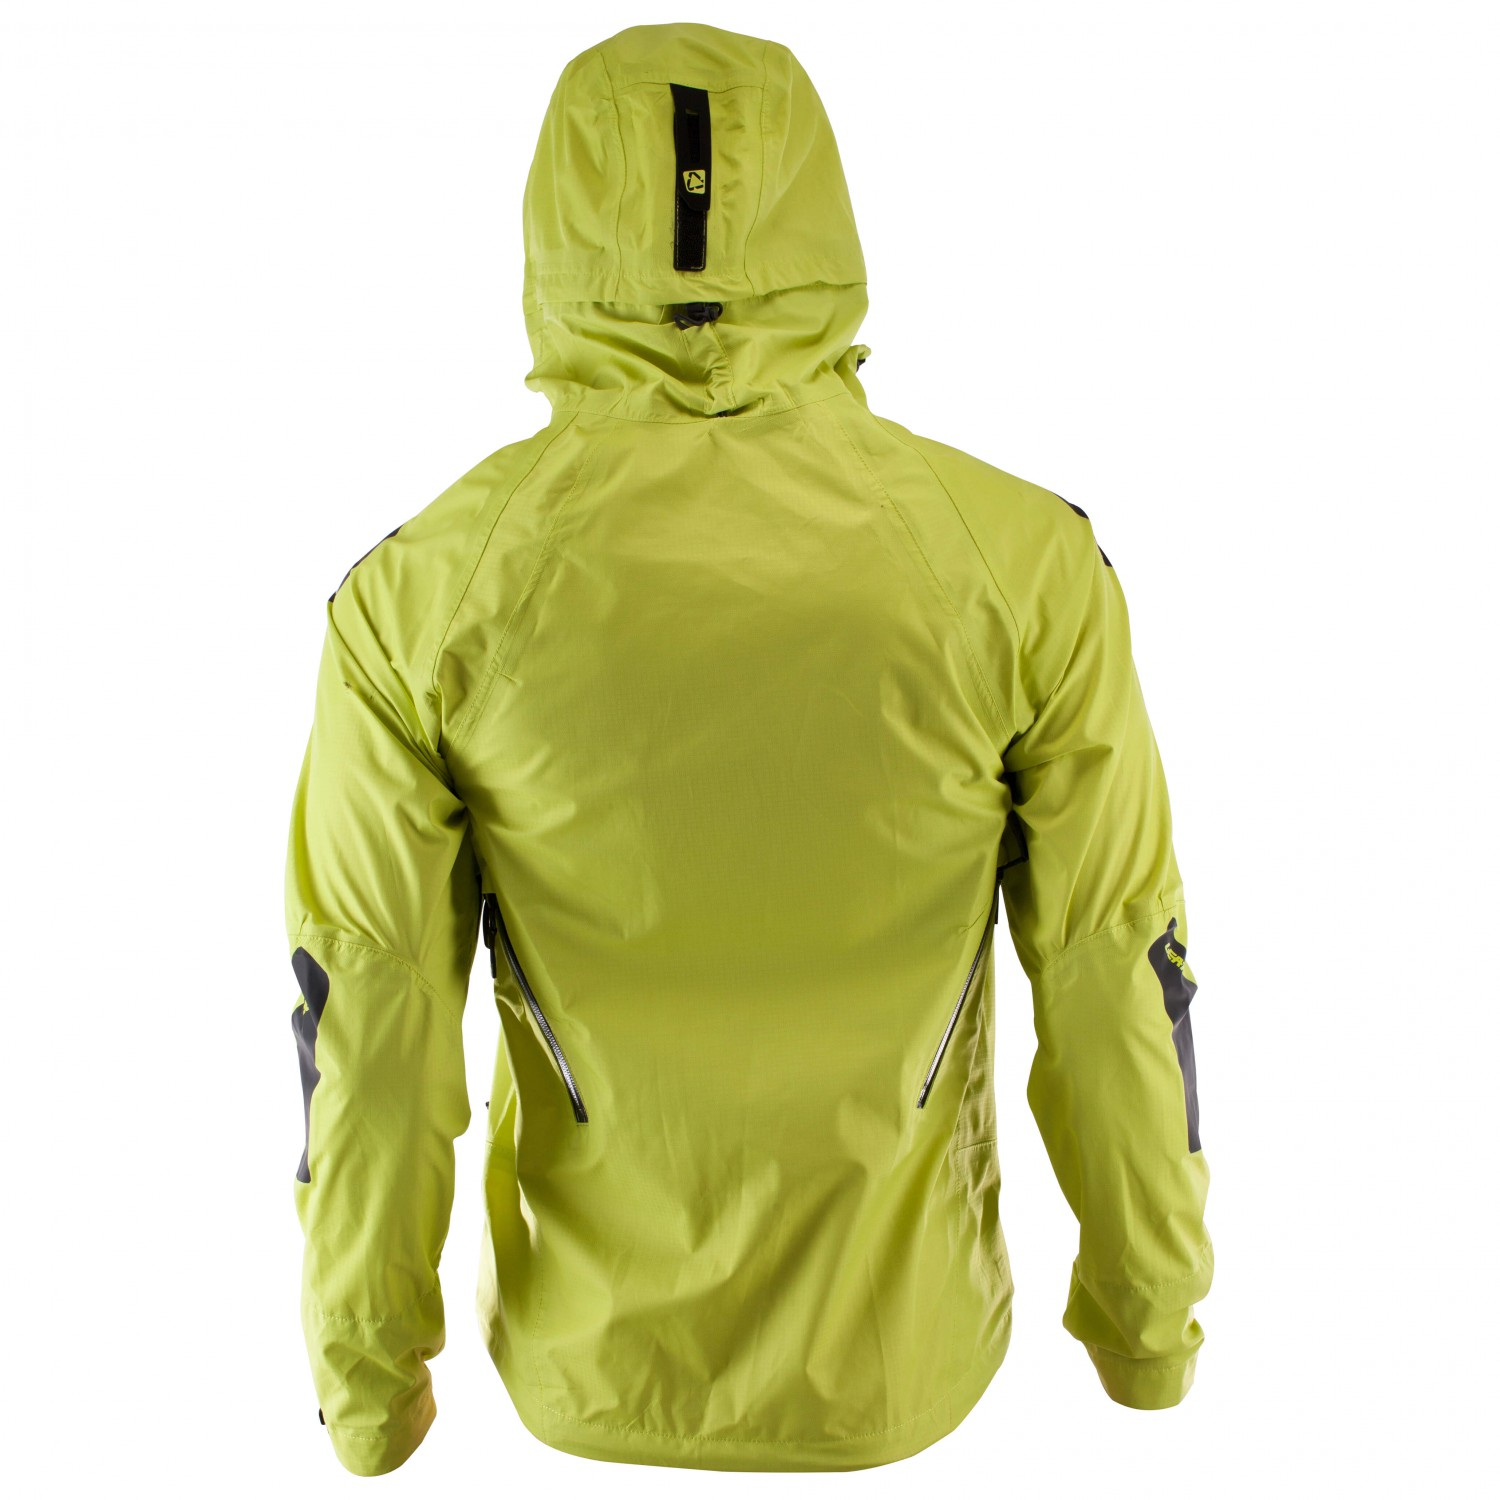 Leatt DBX 5.0 All Mountain Jacket - Bike Jacket Men s  924deee83